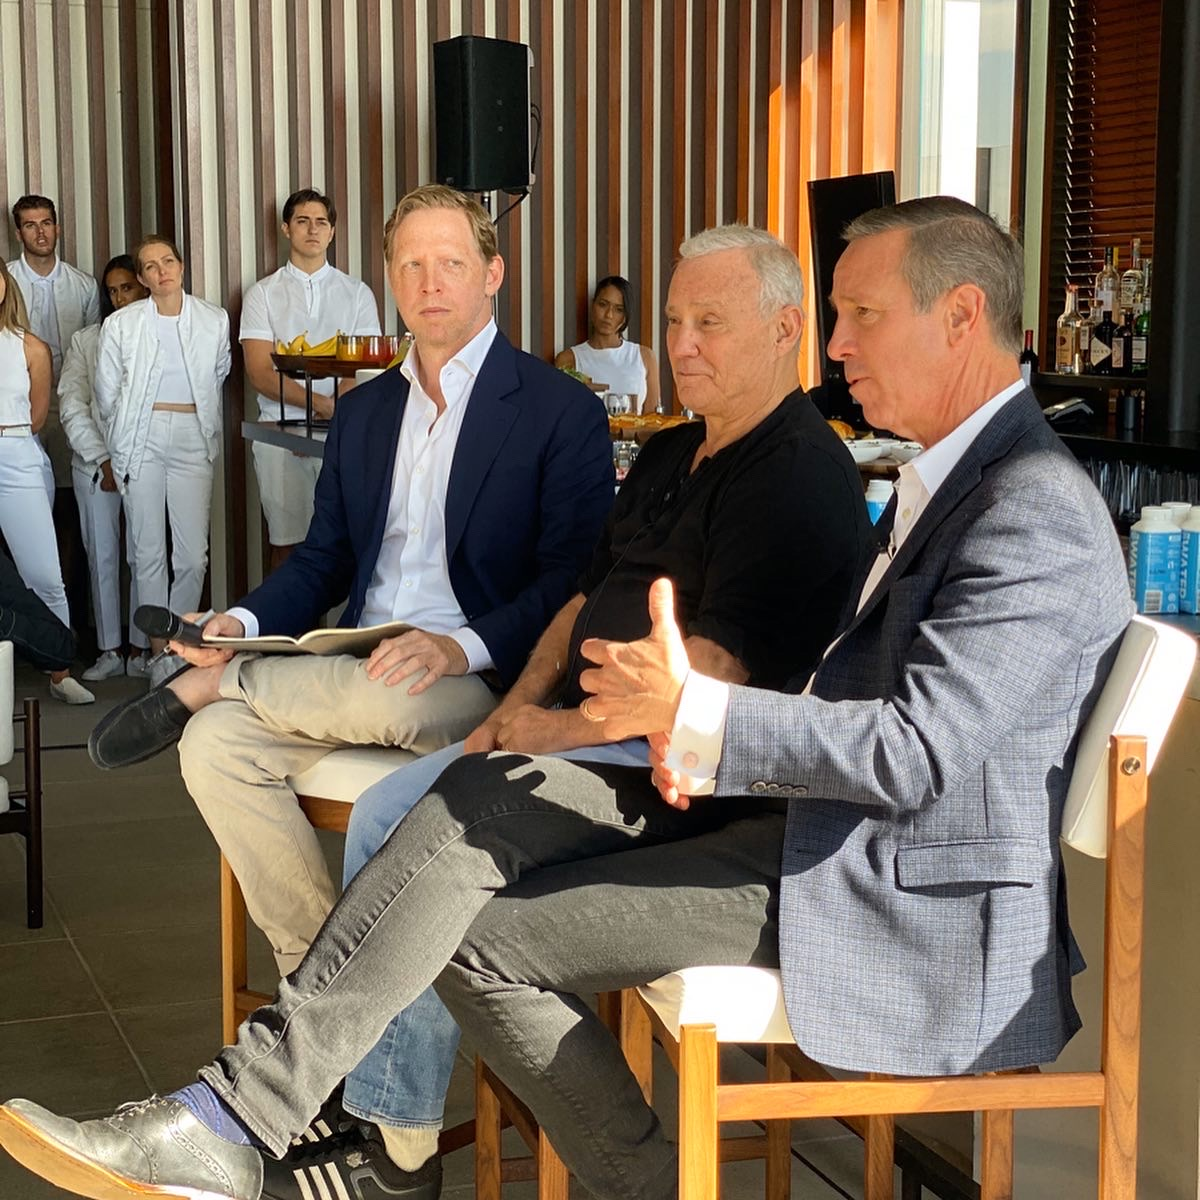 Ian Schrager and Arne Sorenson Interview